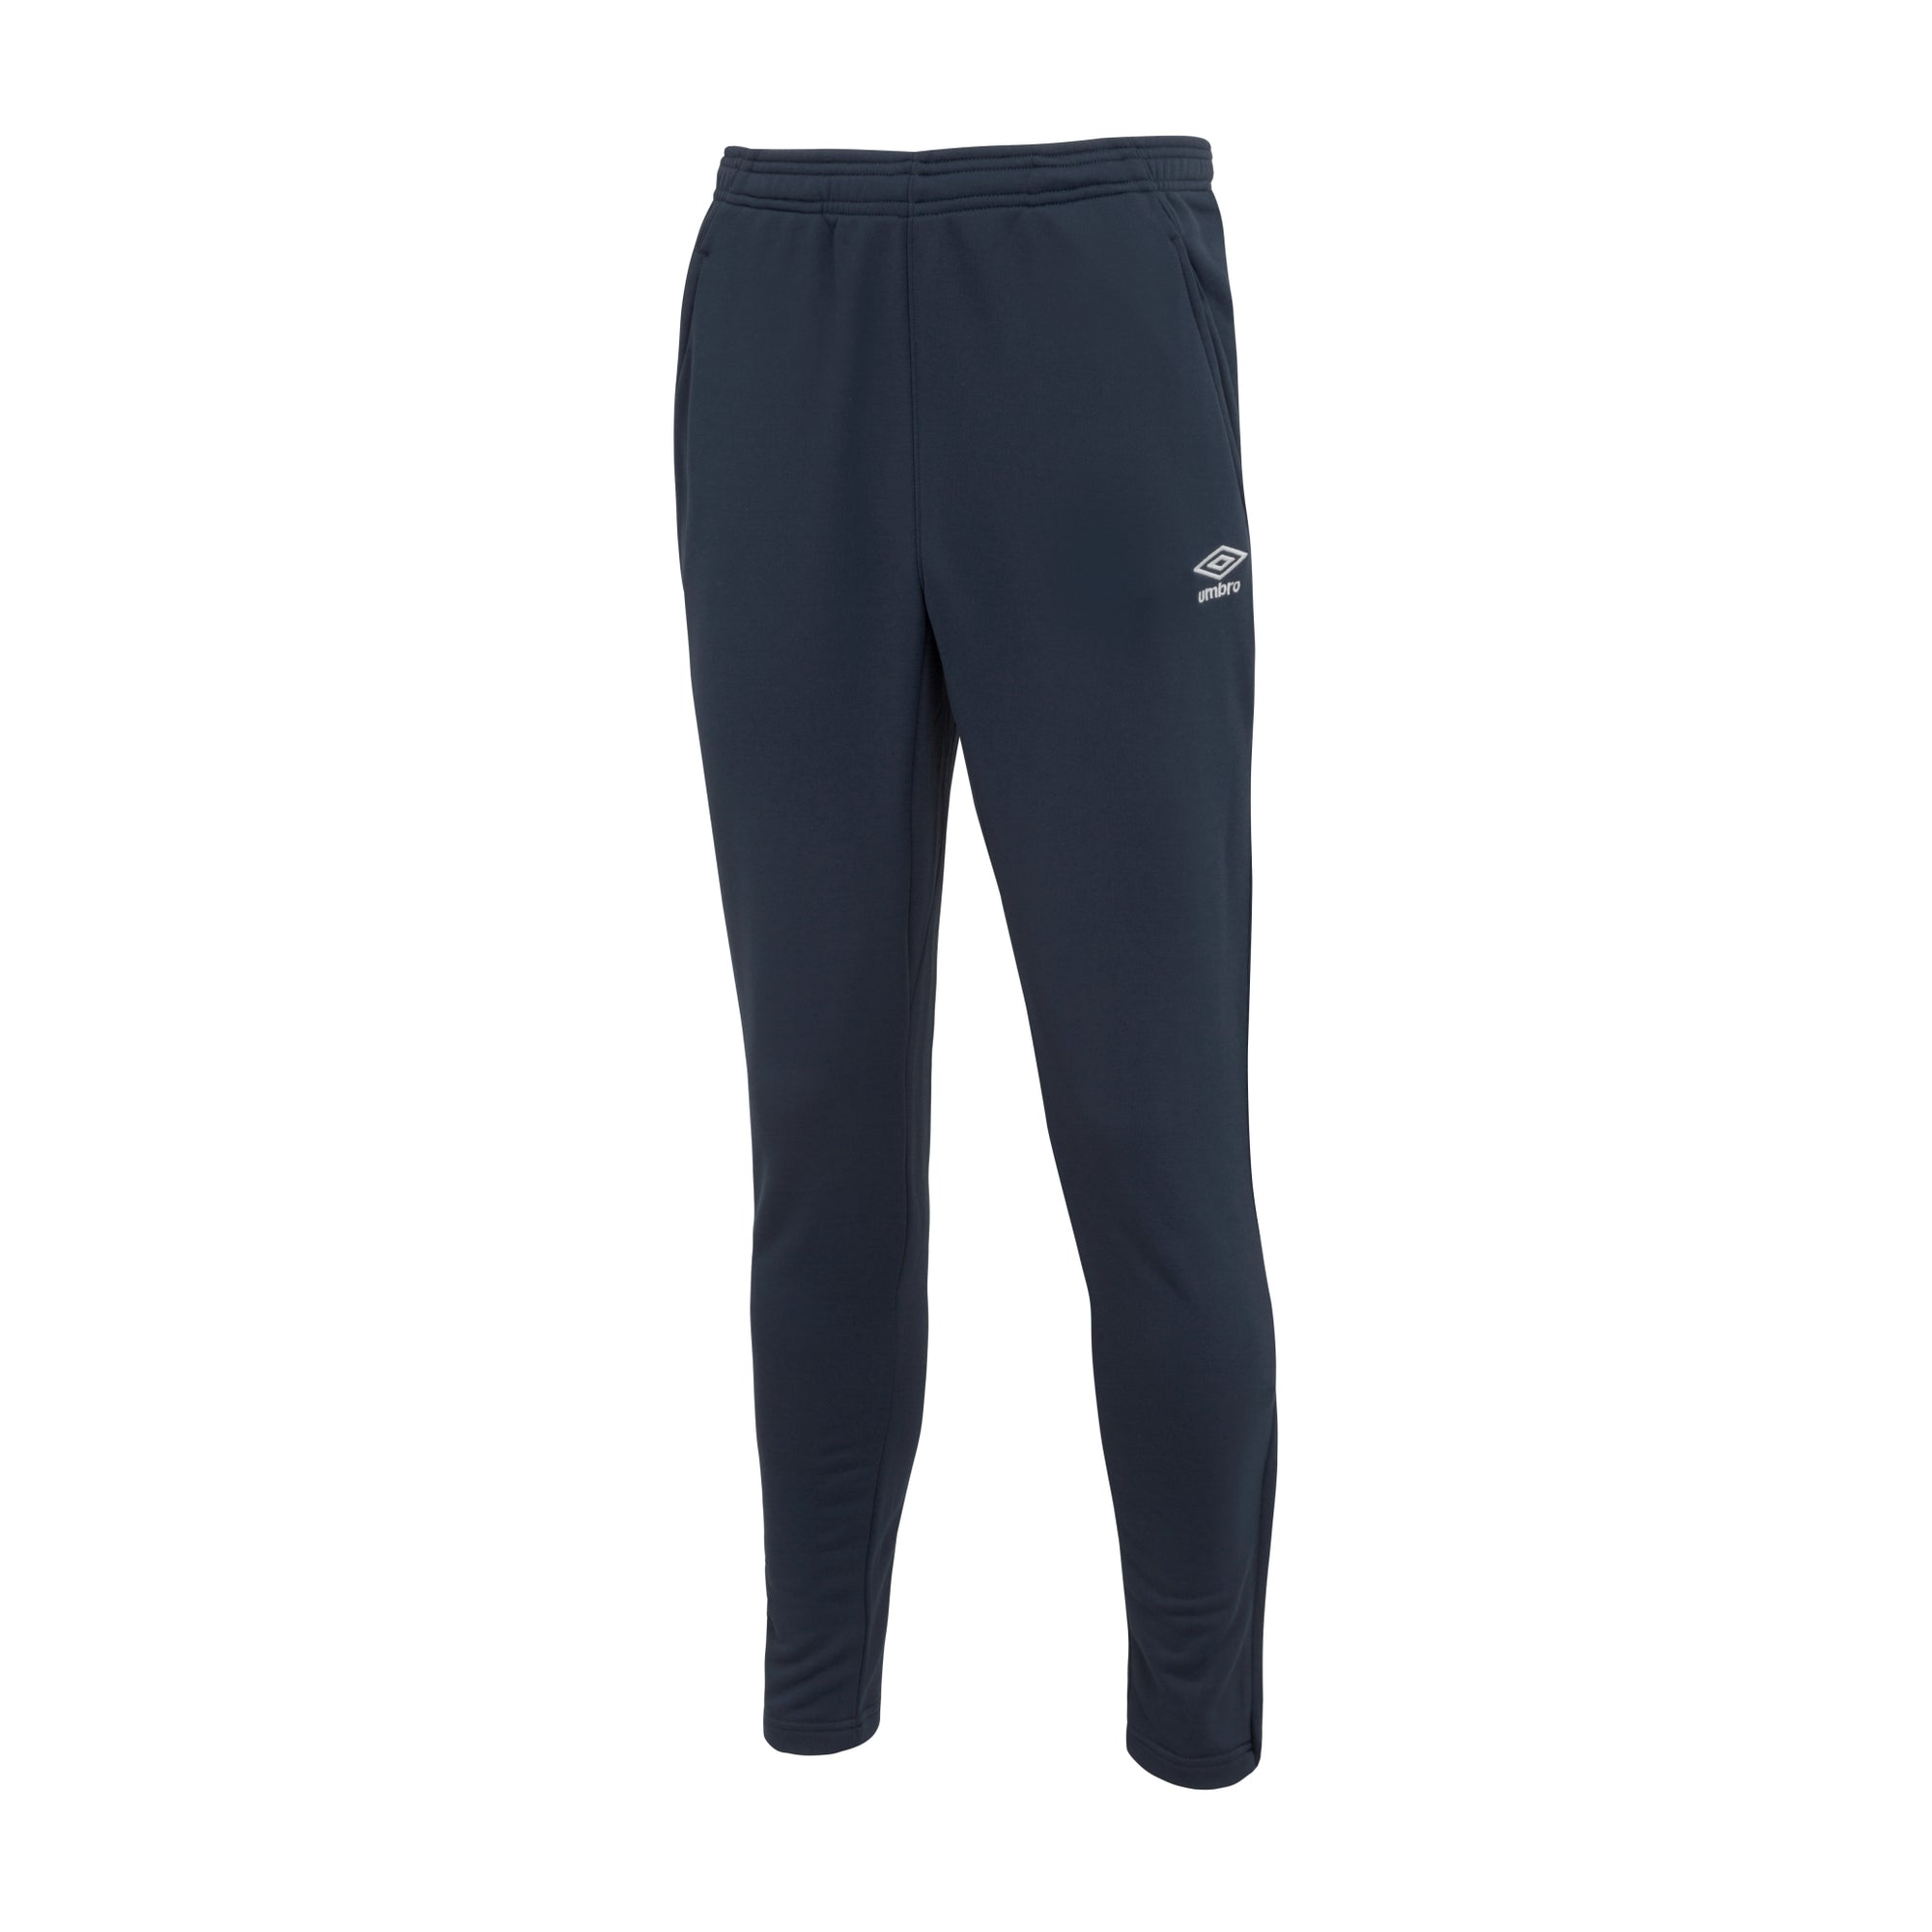 Umbro Tapered Training Pant - Navy